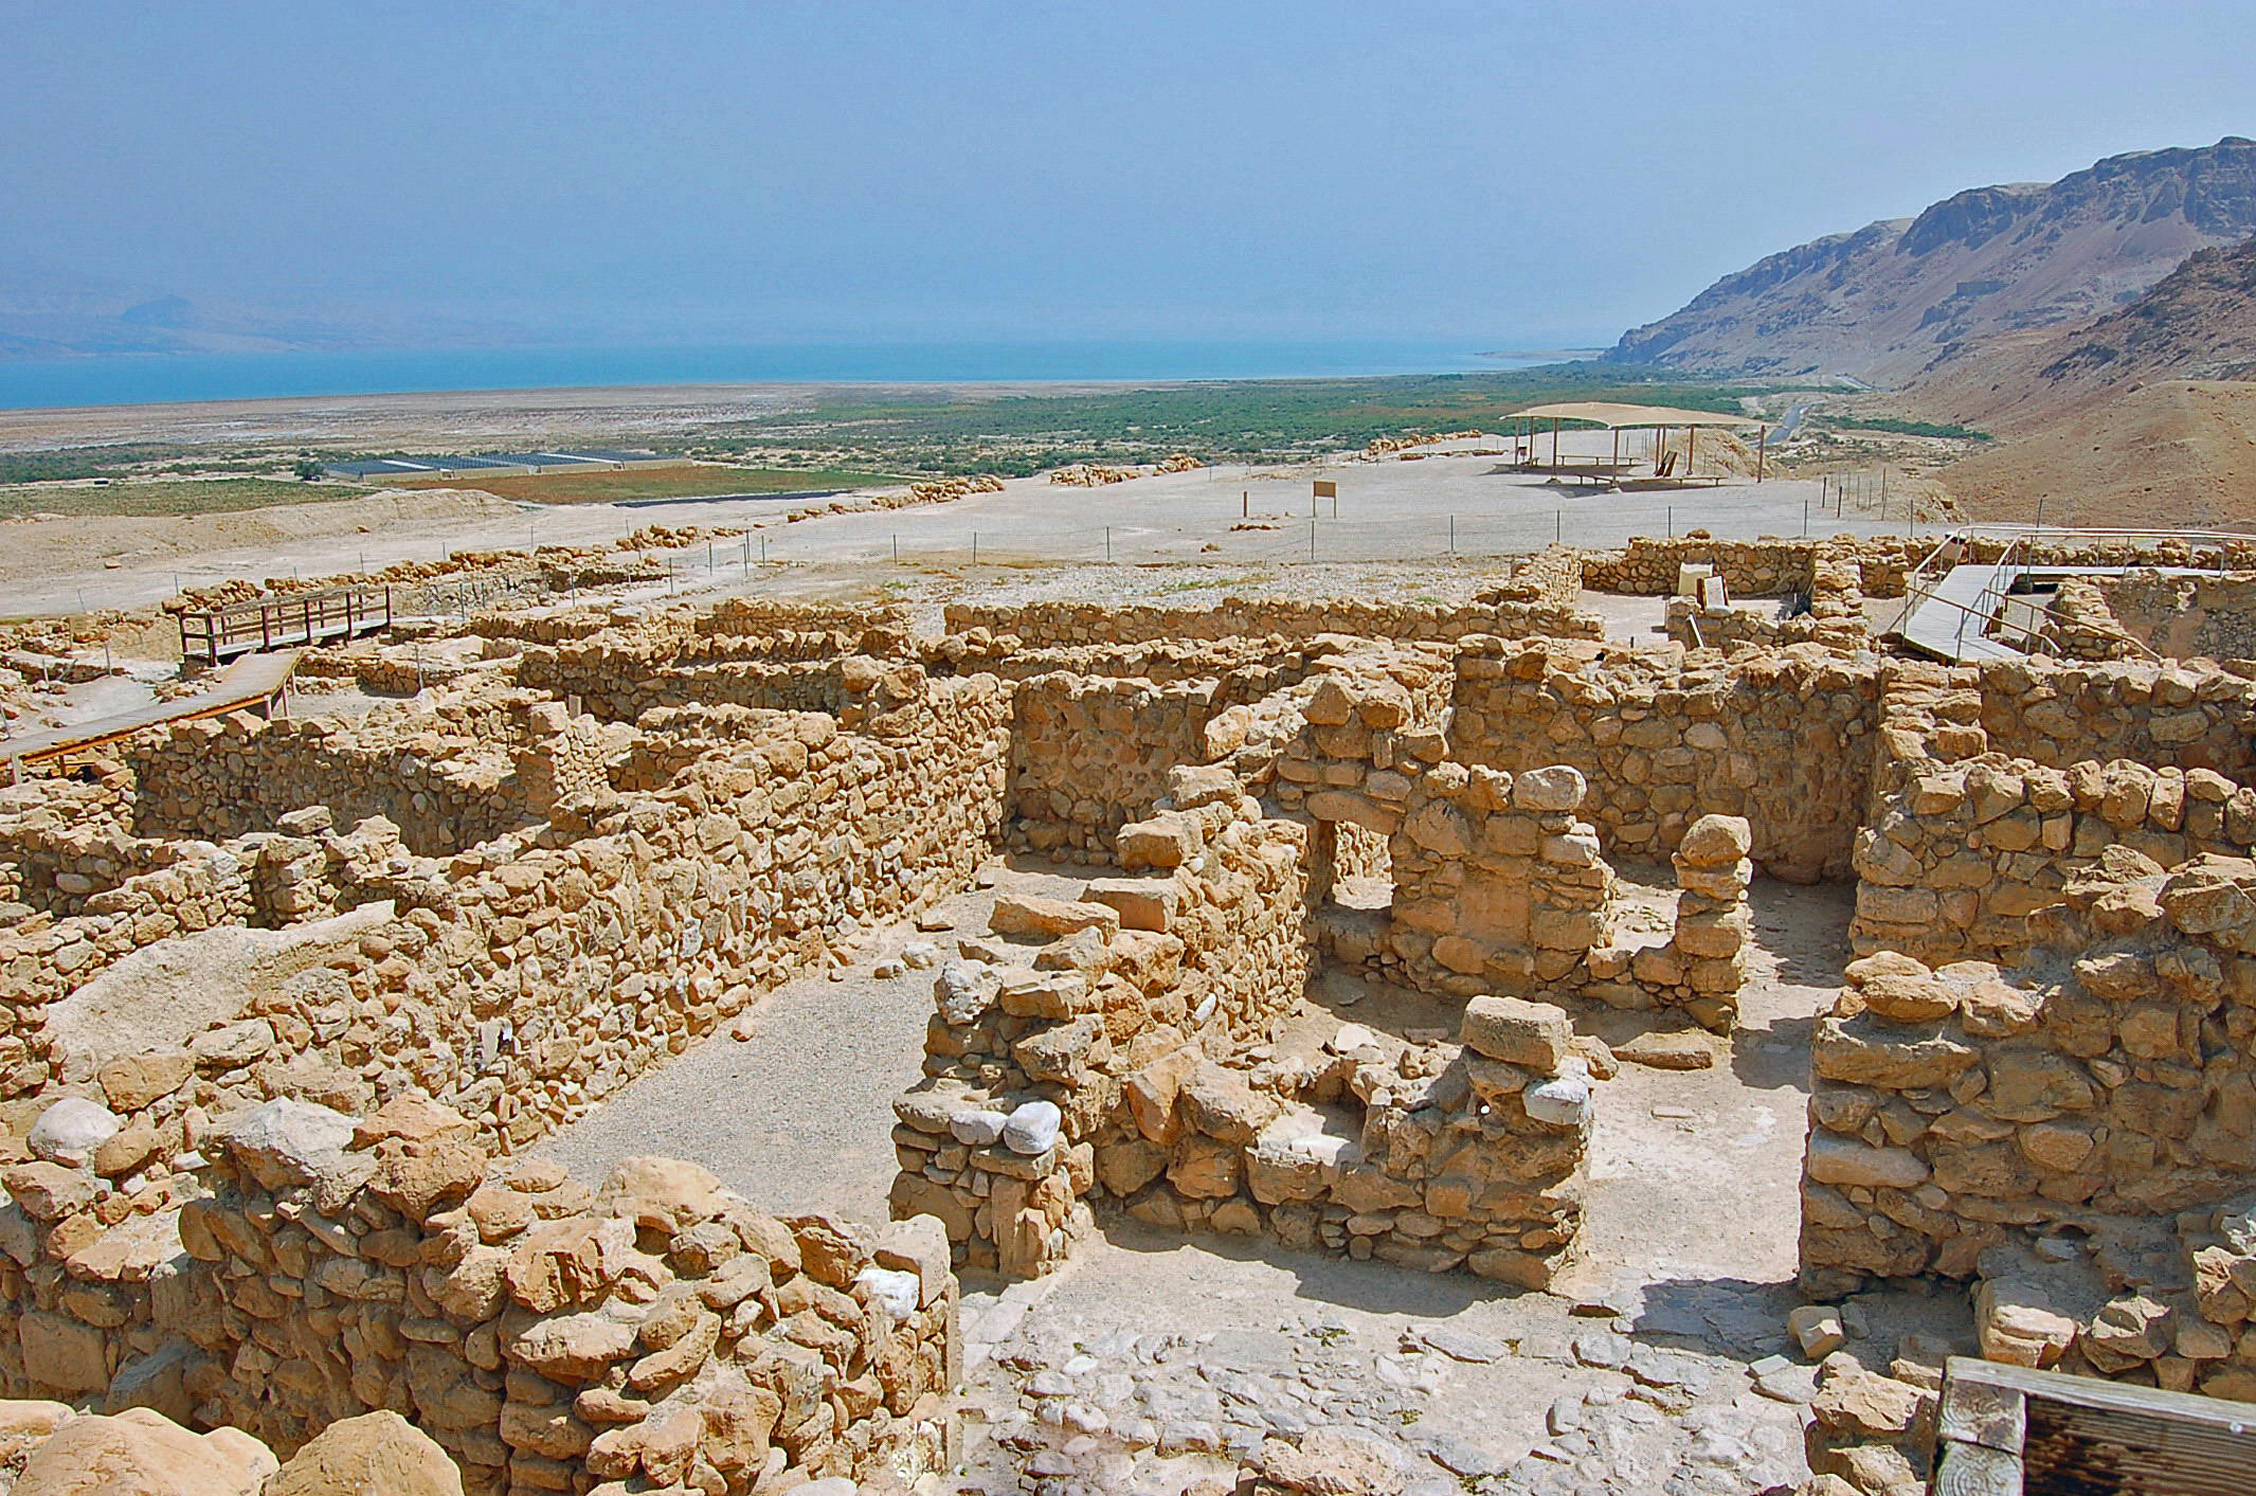 Ruins of Qumran, near the Dead Sea (Photo by Don Knebel)